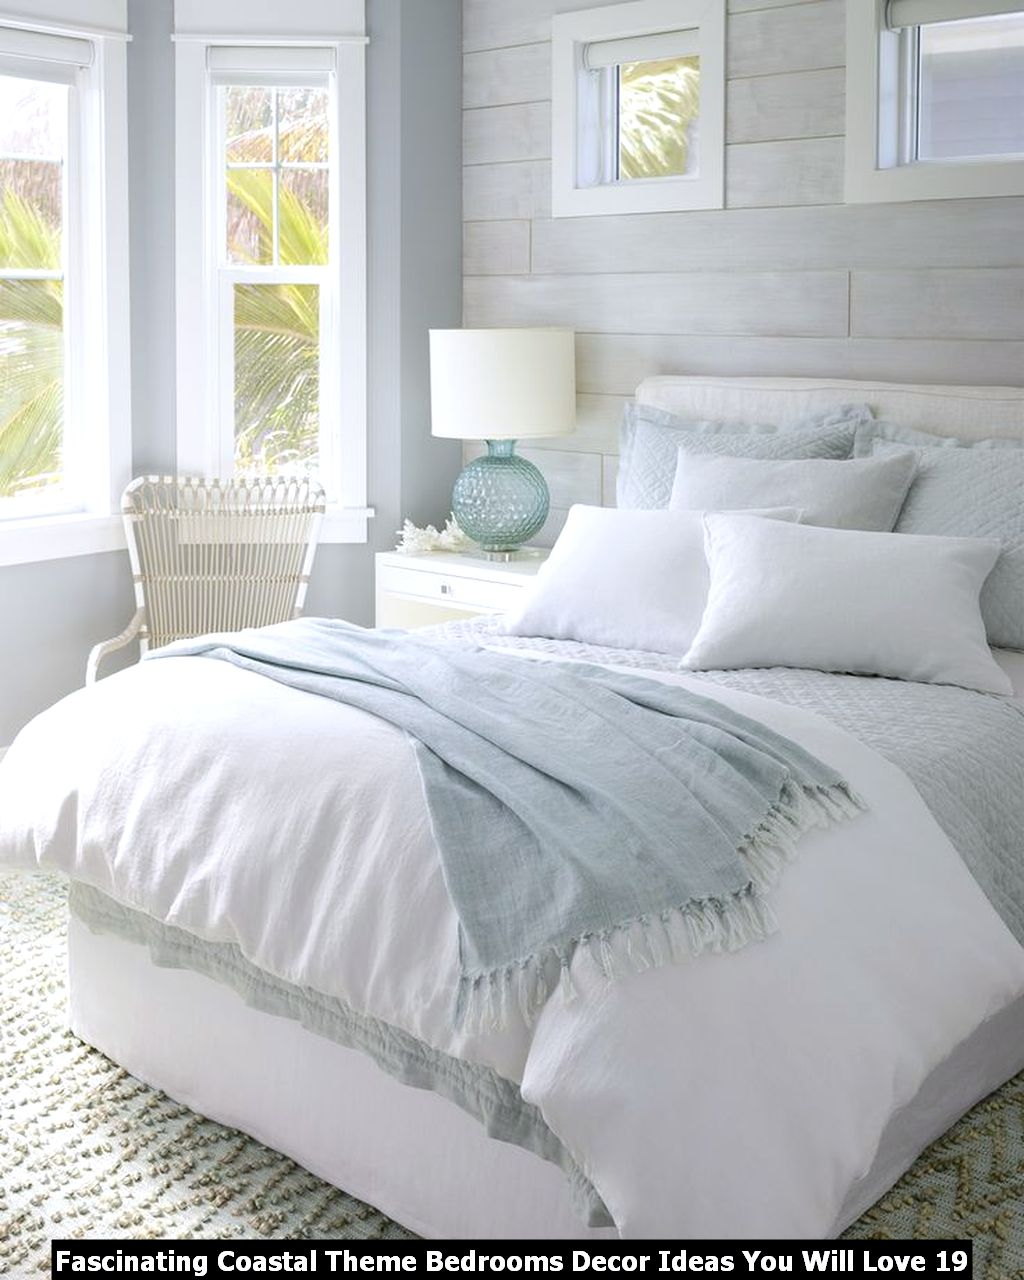 Fascinating Coastal Theme Bedrooms Decor Ideas You Will Love 19